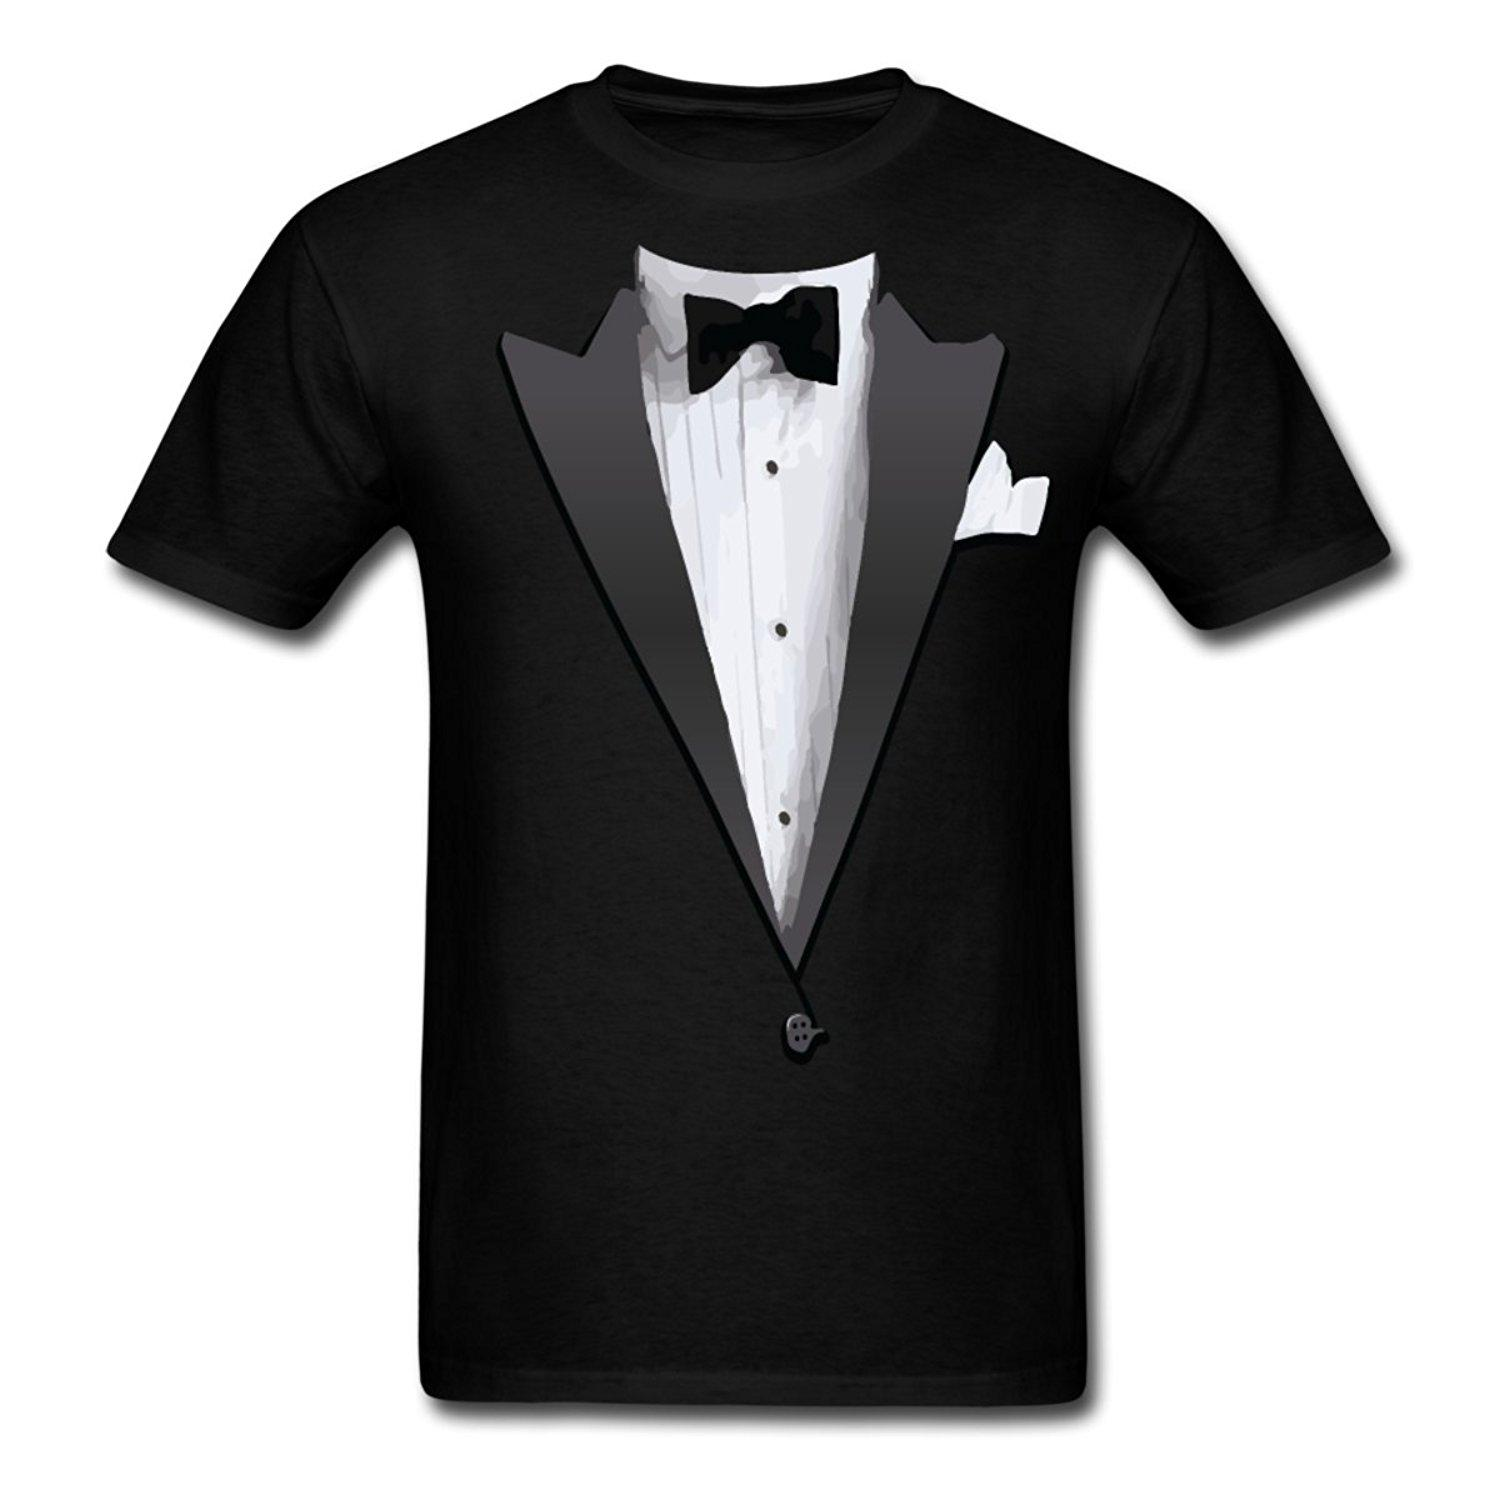 21dc3a28c Tuxedo Costume Bow Tie Men's T-Shirt T Shirts Man Clothing Free Shipping  Summer Style Hip Hop Men T Shirt Tops Shirt